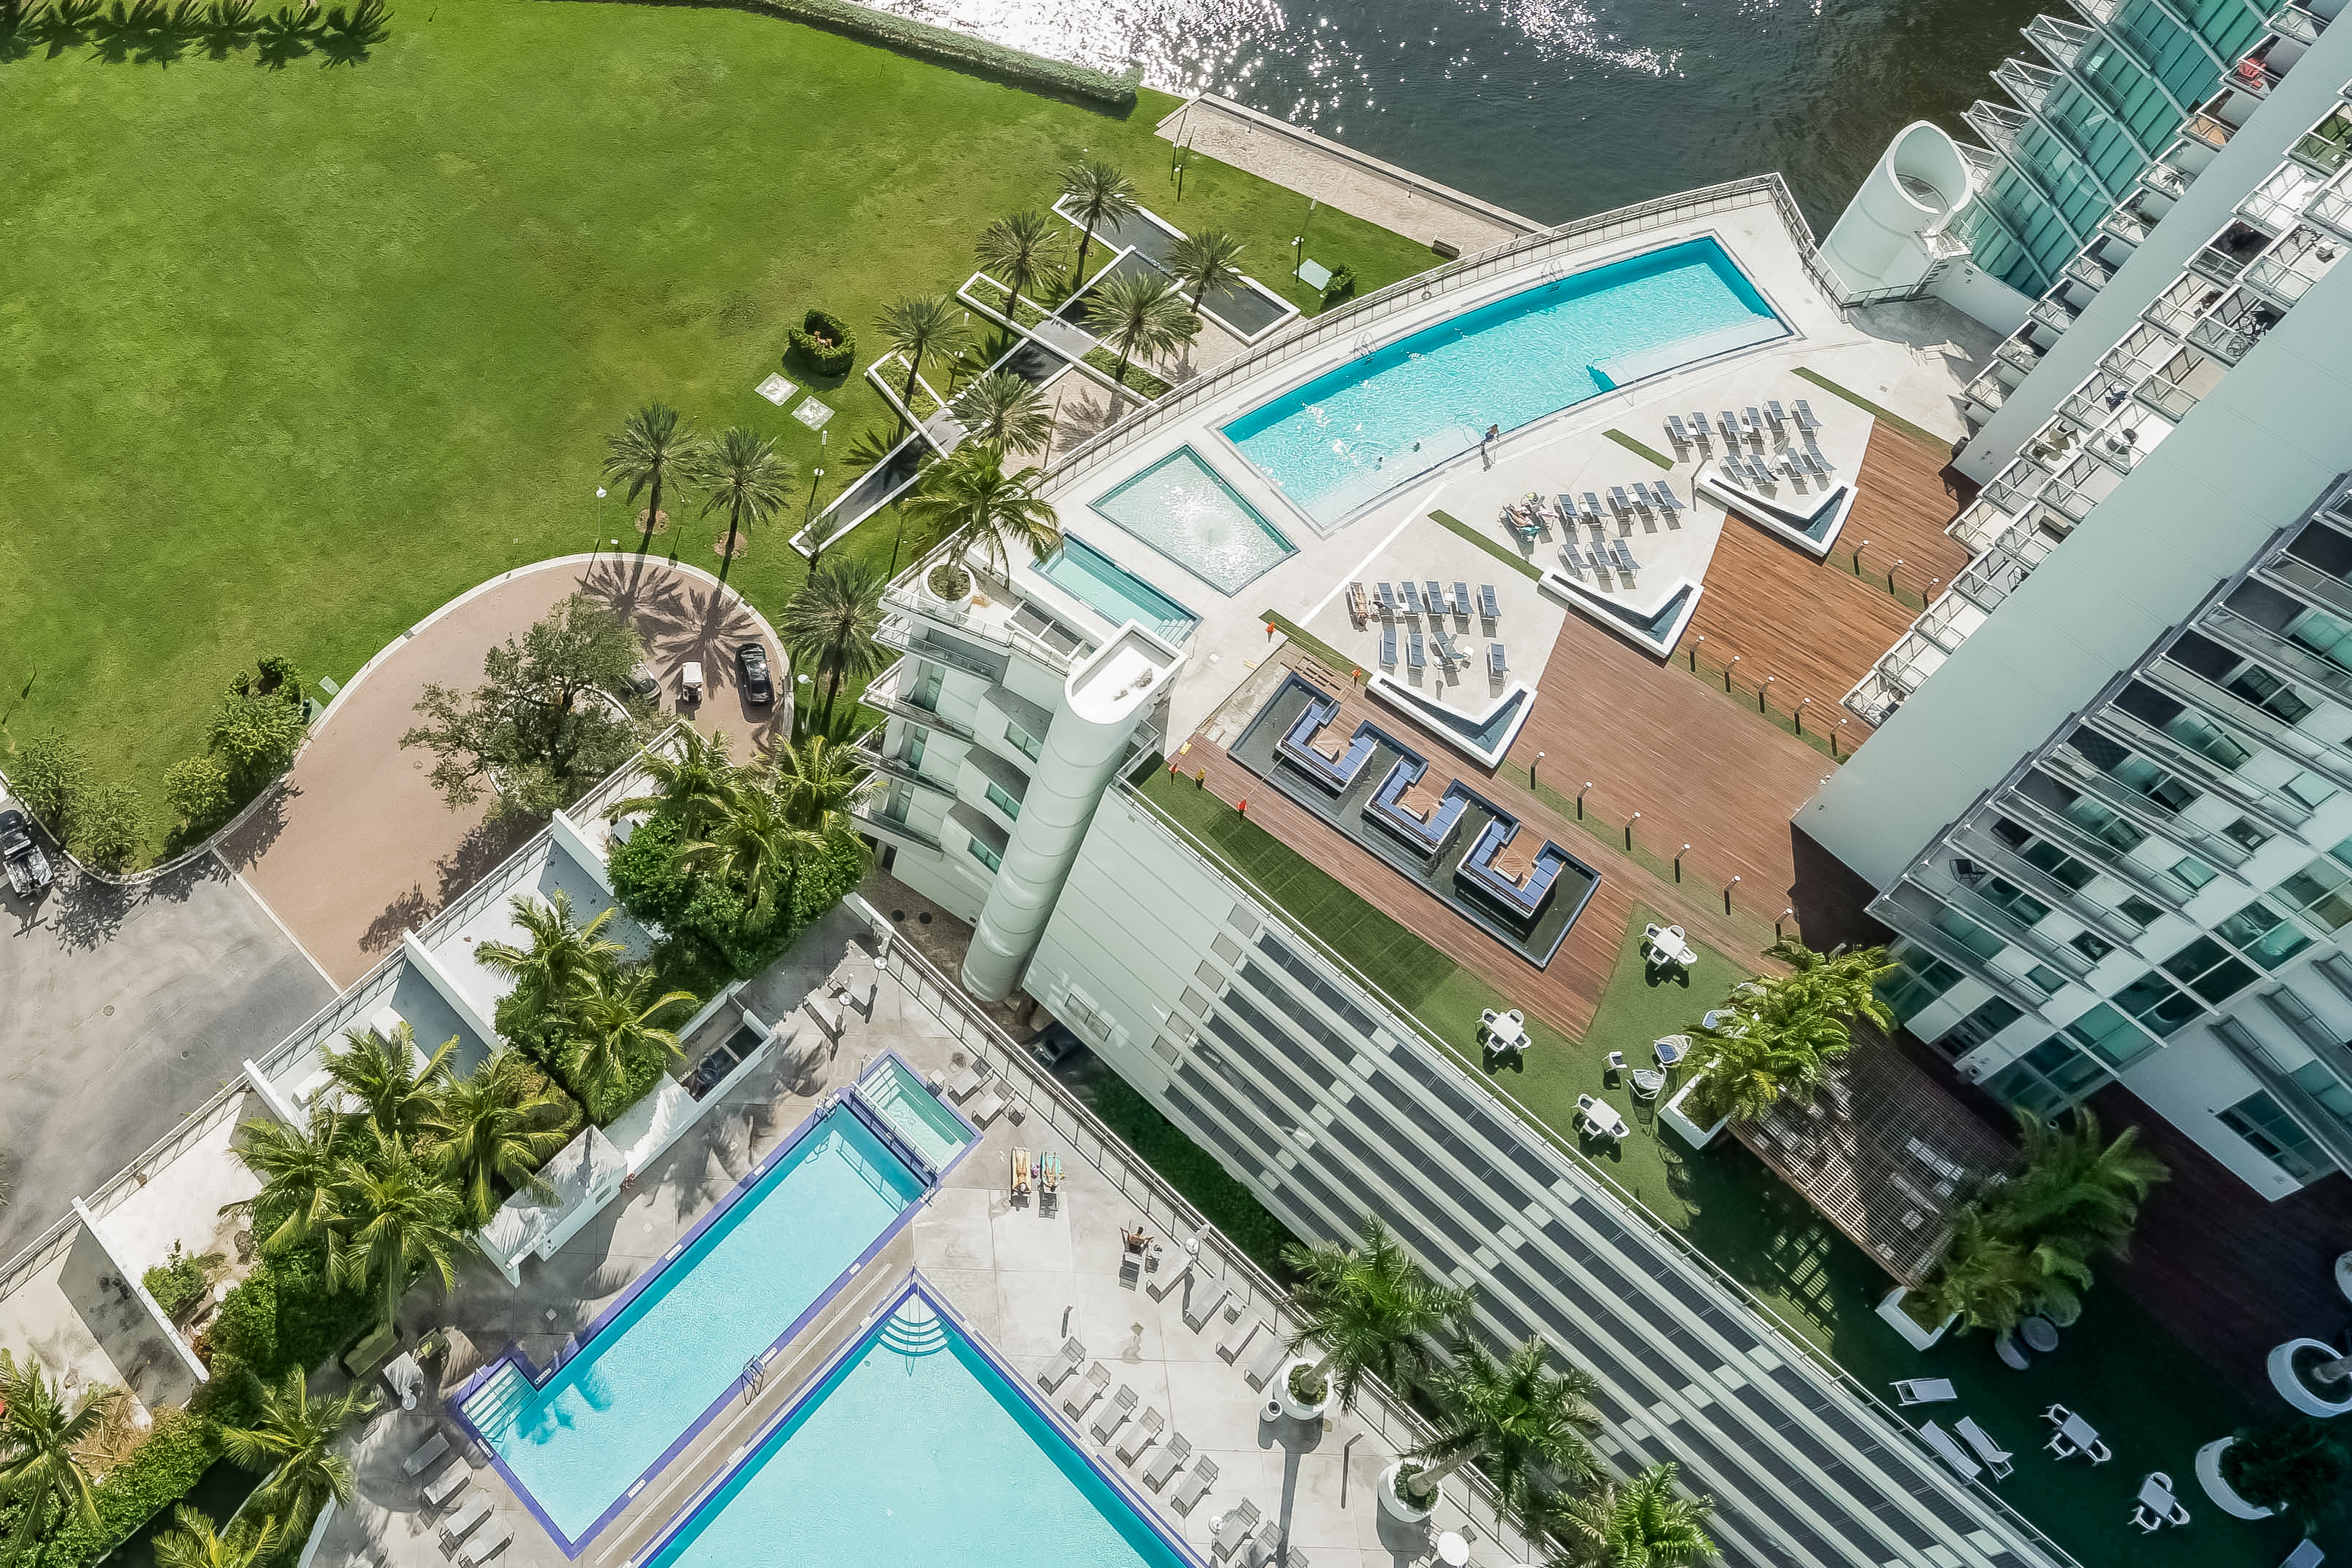 Condominium for Sale at 90 Sw 3rd St #2004 90 Sw 3rd St 2004 Miami, Florida, 33130 United States